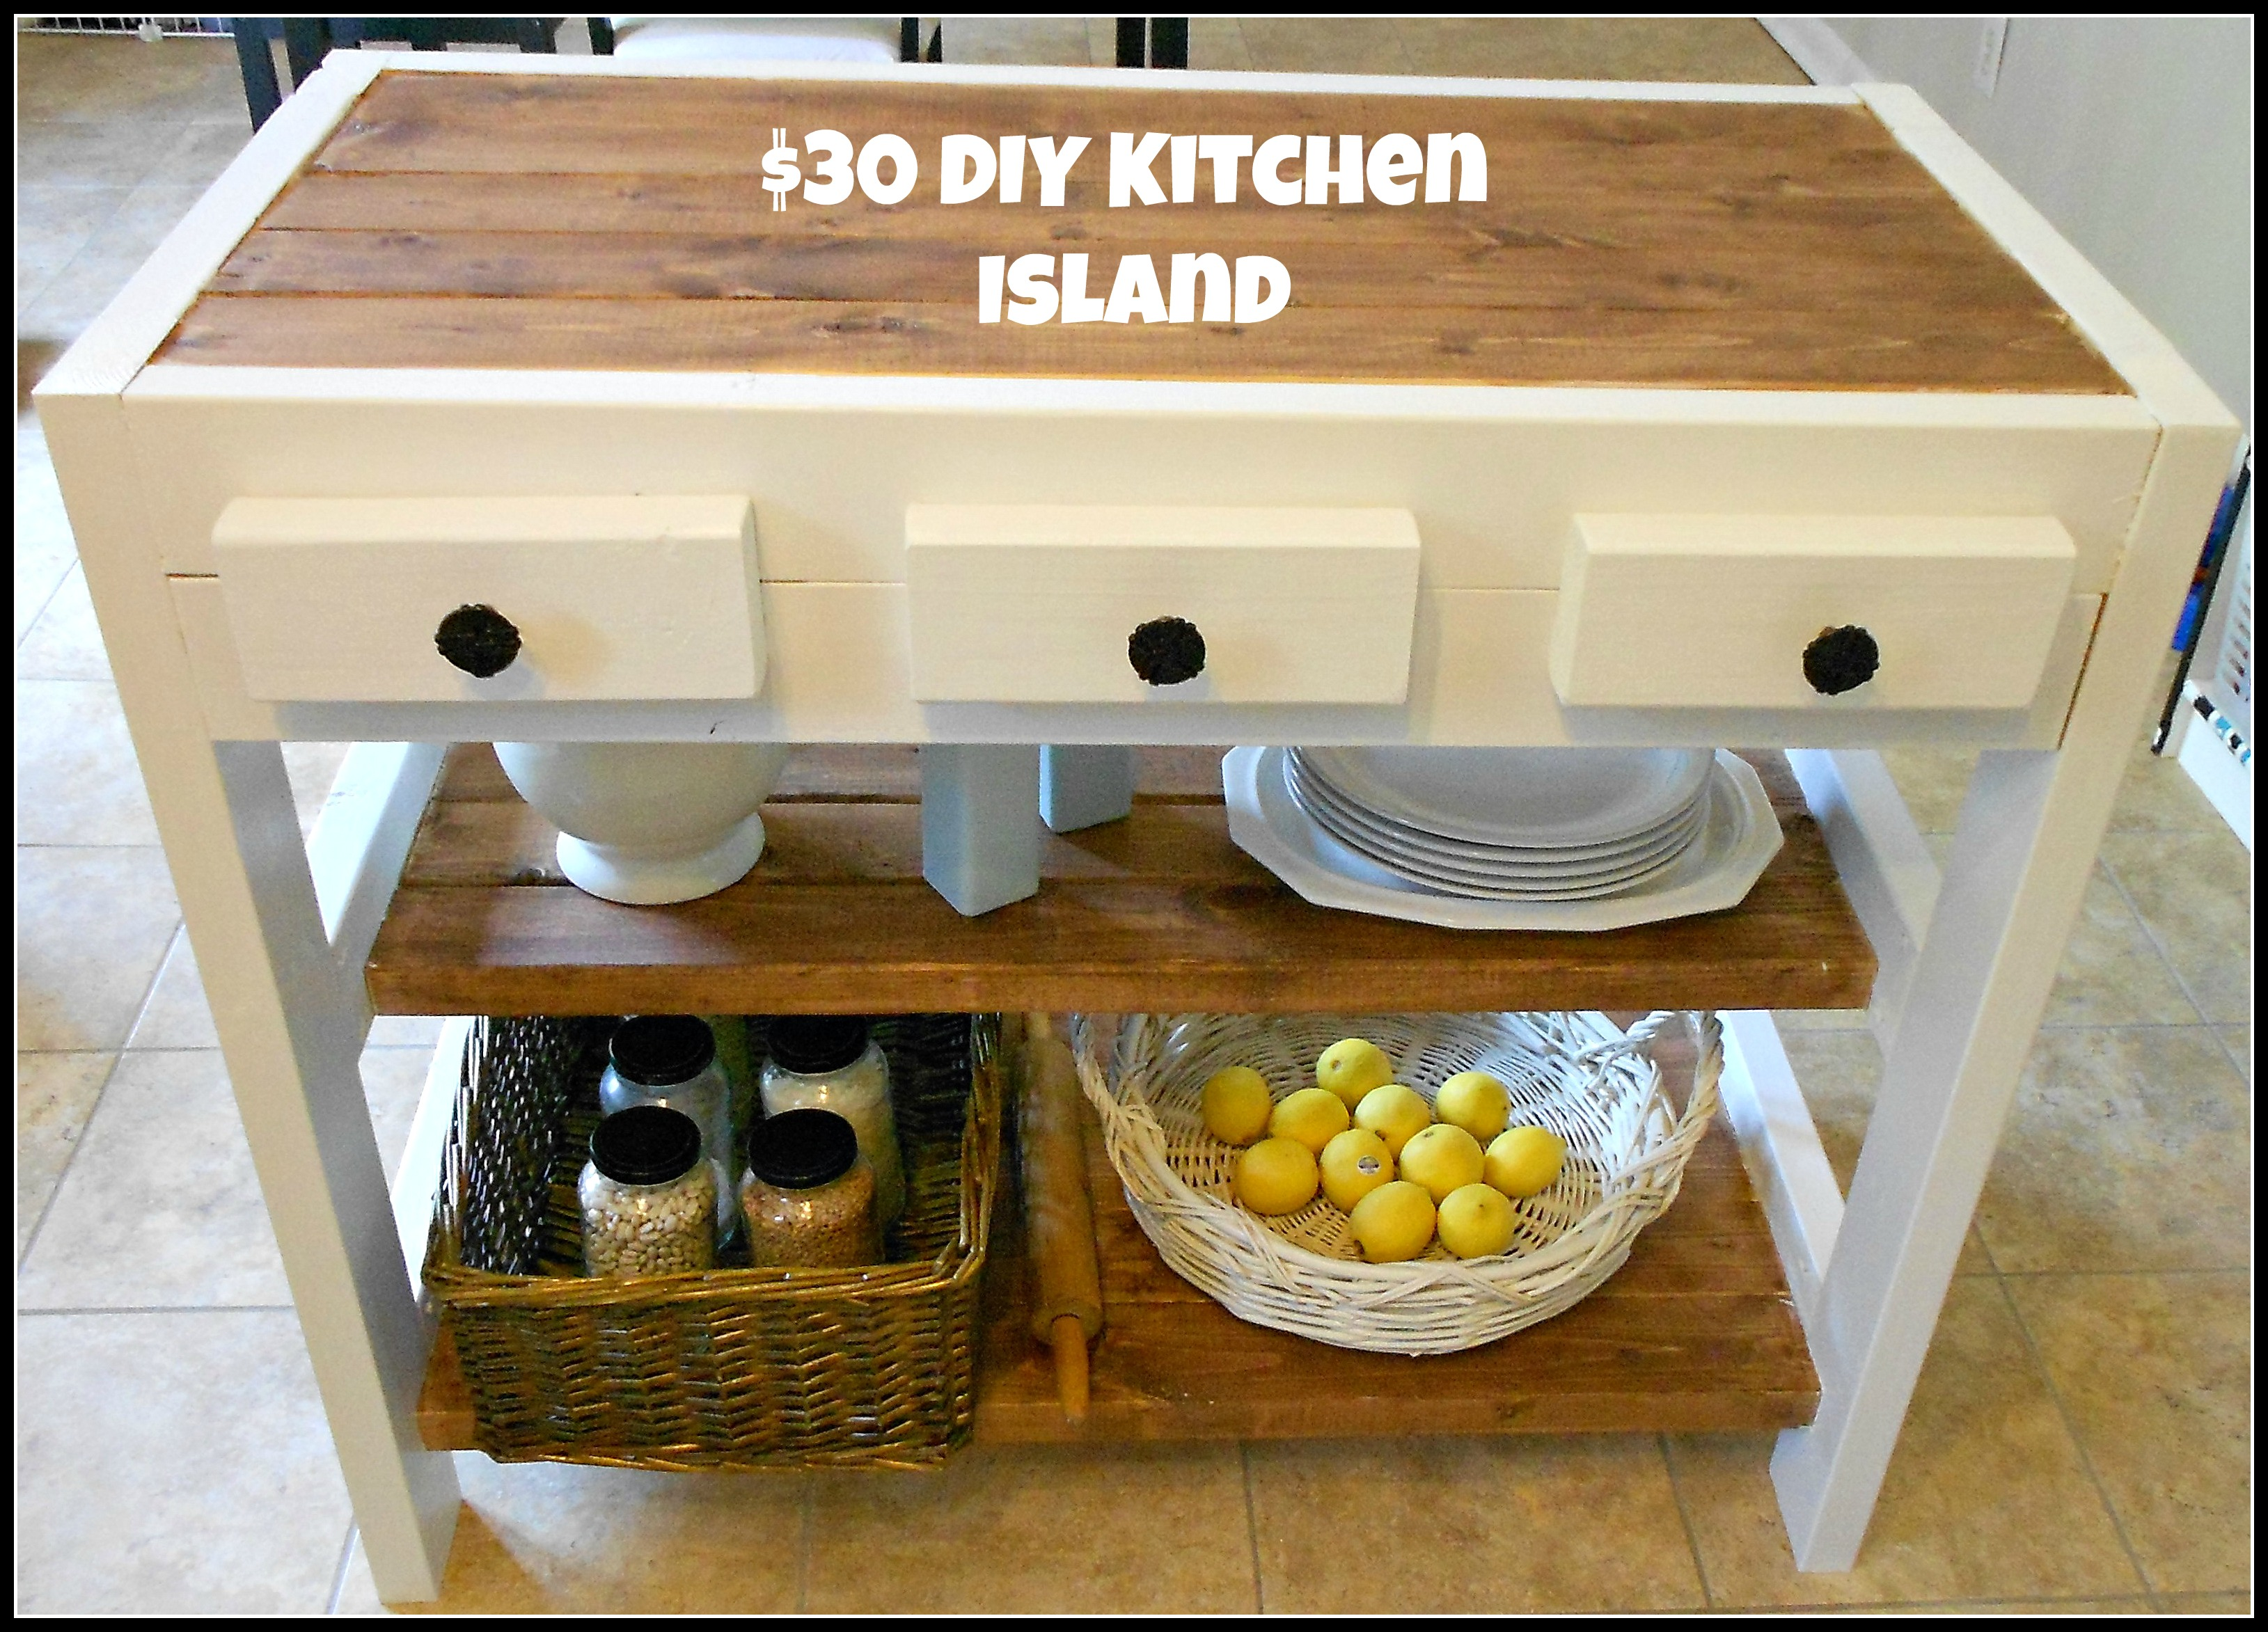 Diy Kitchen Island Plans $30 diy kitchen island - mom in music city